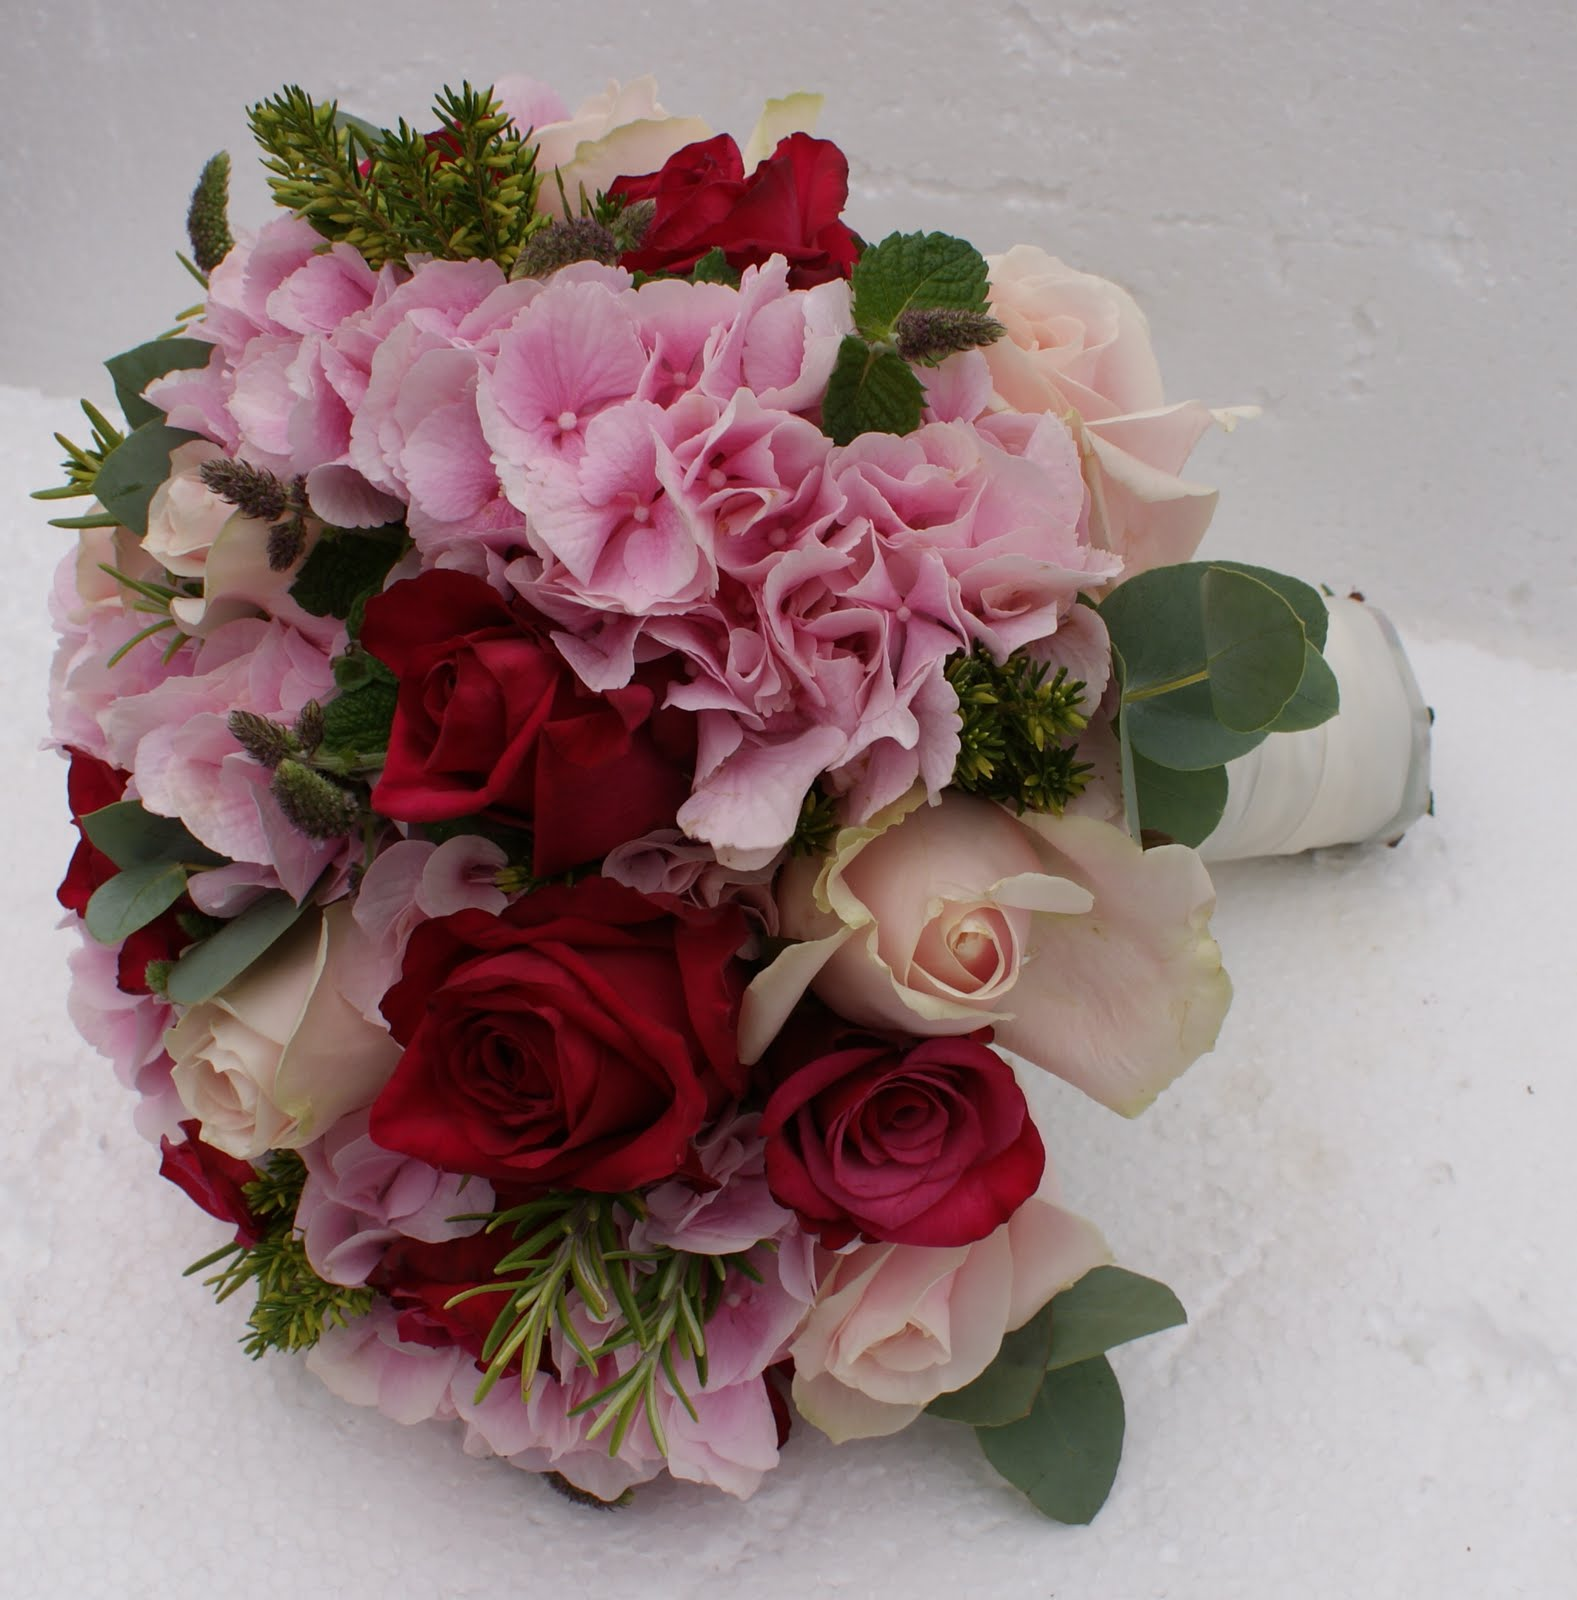 Wedding Flowers In Keighley : The flower company alex sidgreaves tithe barn petersfield